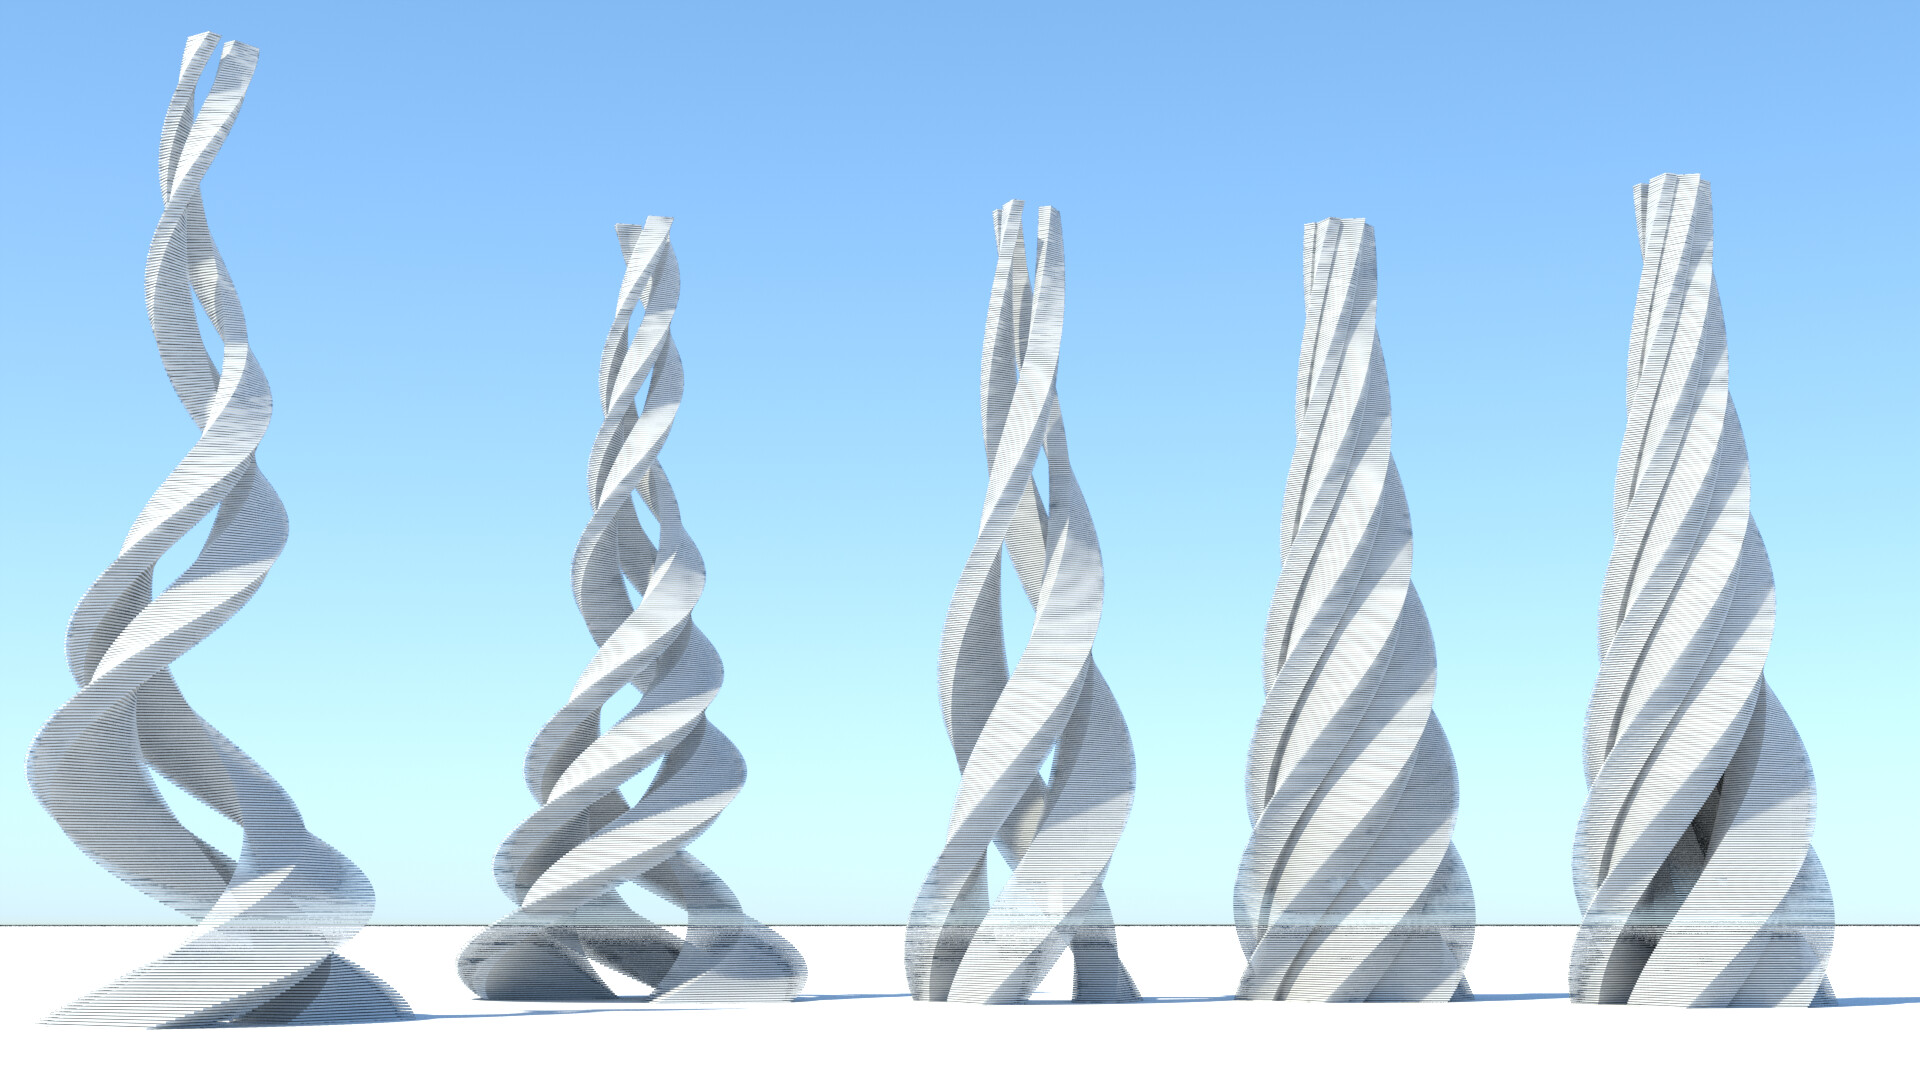 Procedurally-generated spiral towers - elevation view